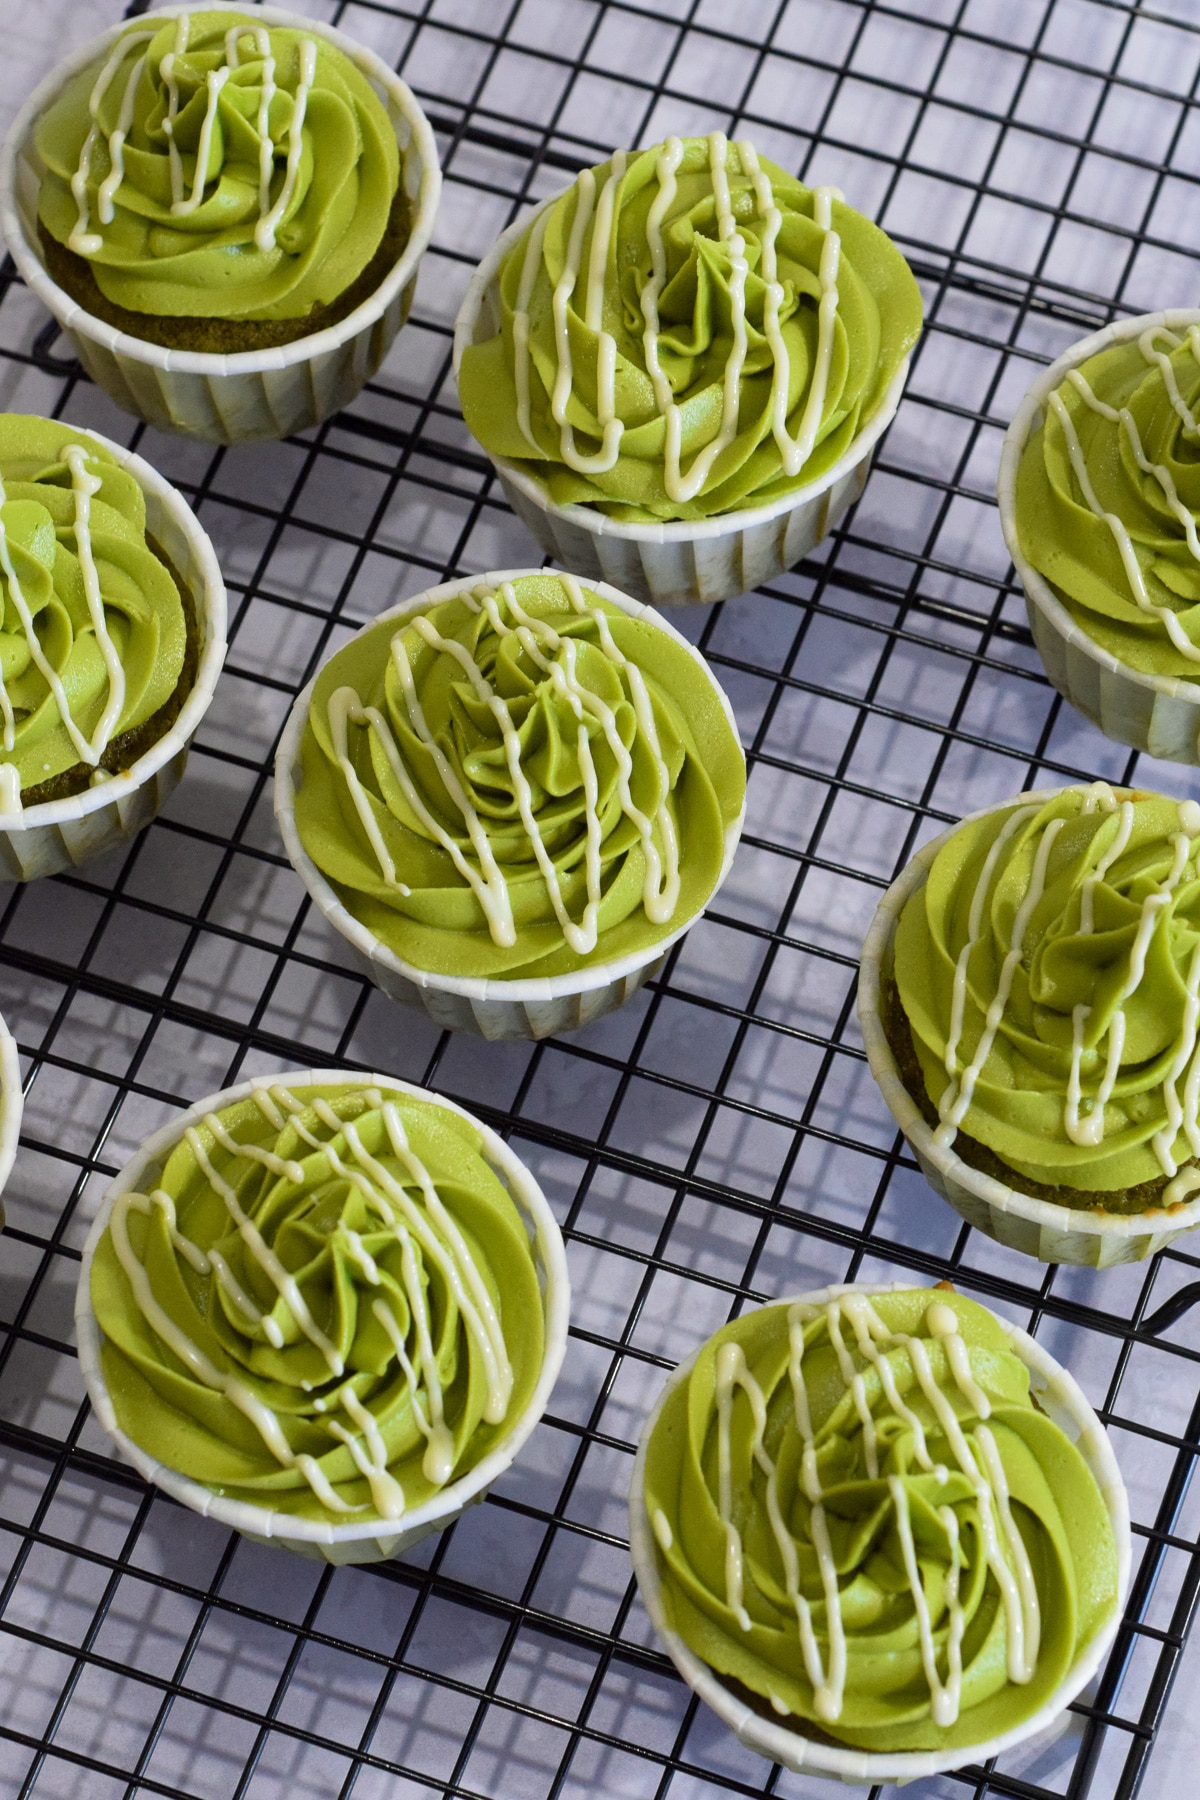 Matcha green tea cupcakes with a matcha buttercream frosting and white chocolate drizzle from above